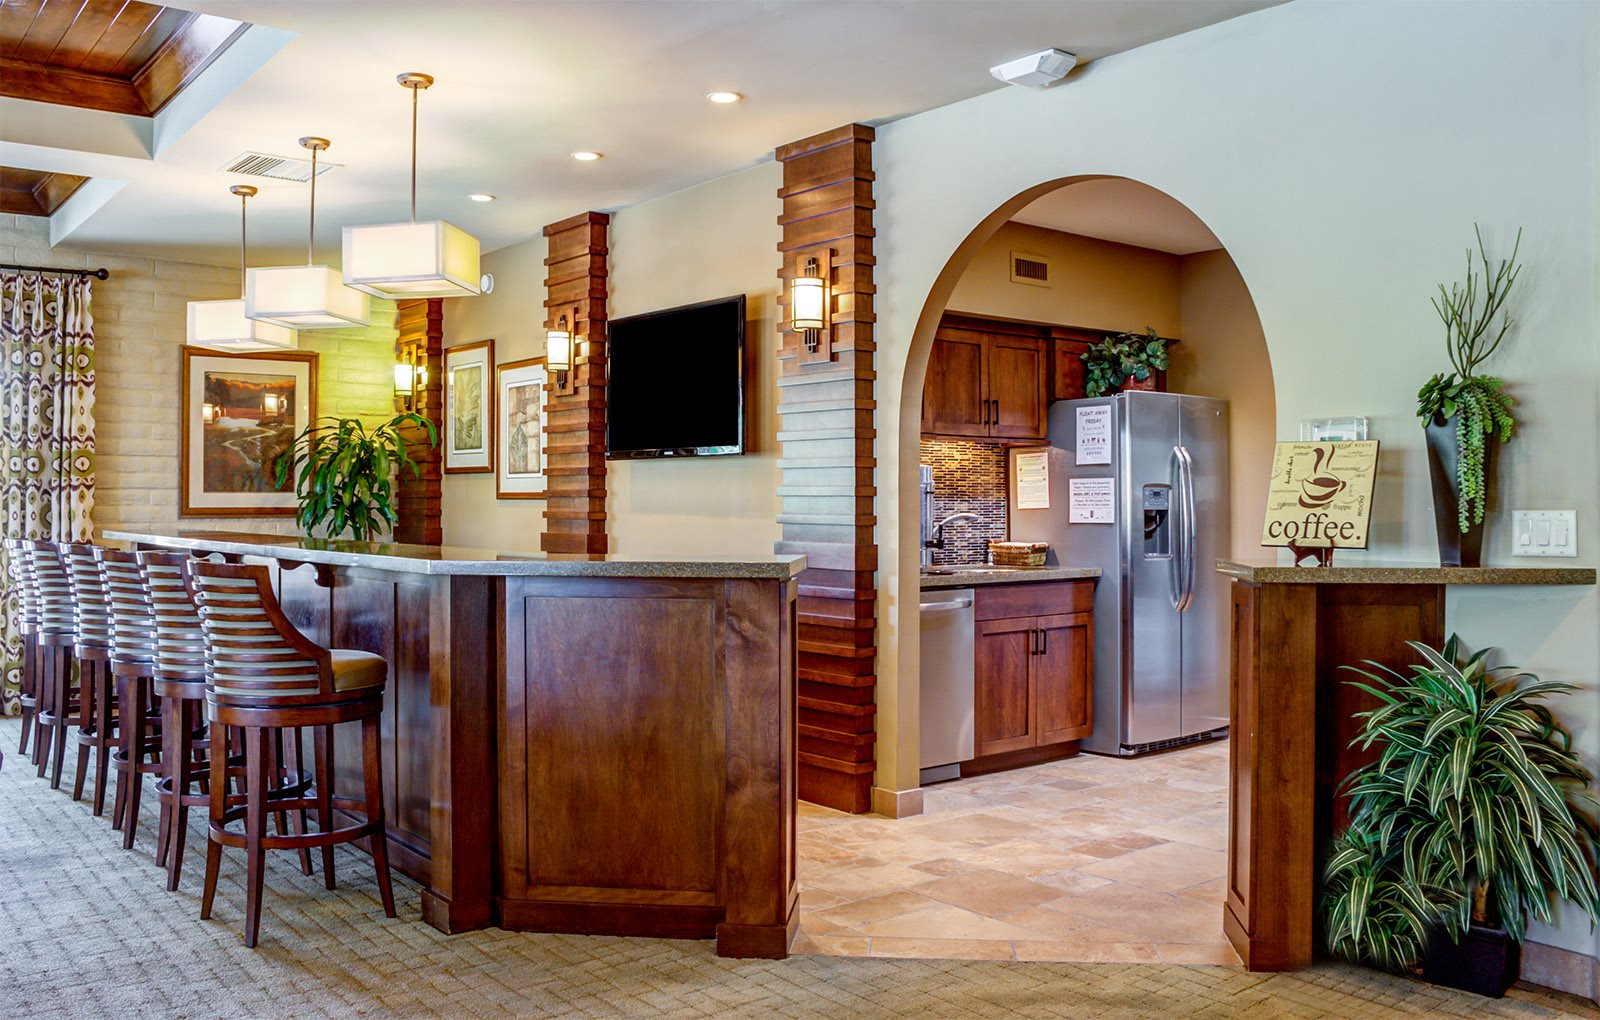 Image of the resident Clubhouse at Sonoran Terraces Apartment Homes in Tucson